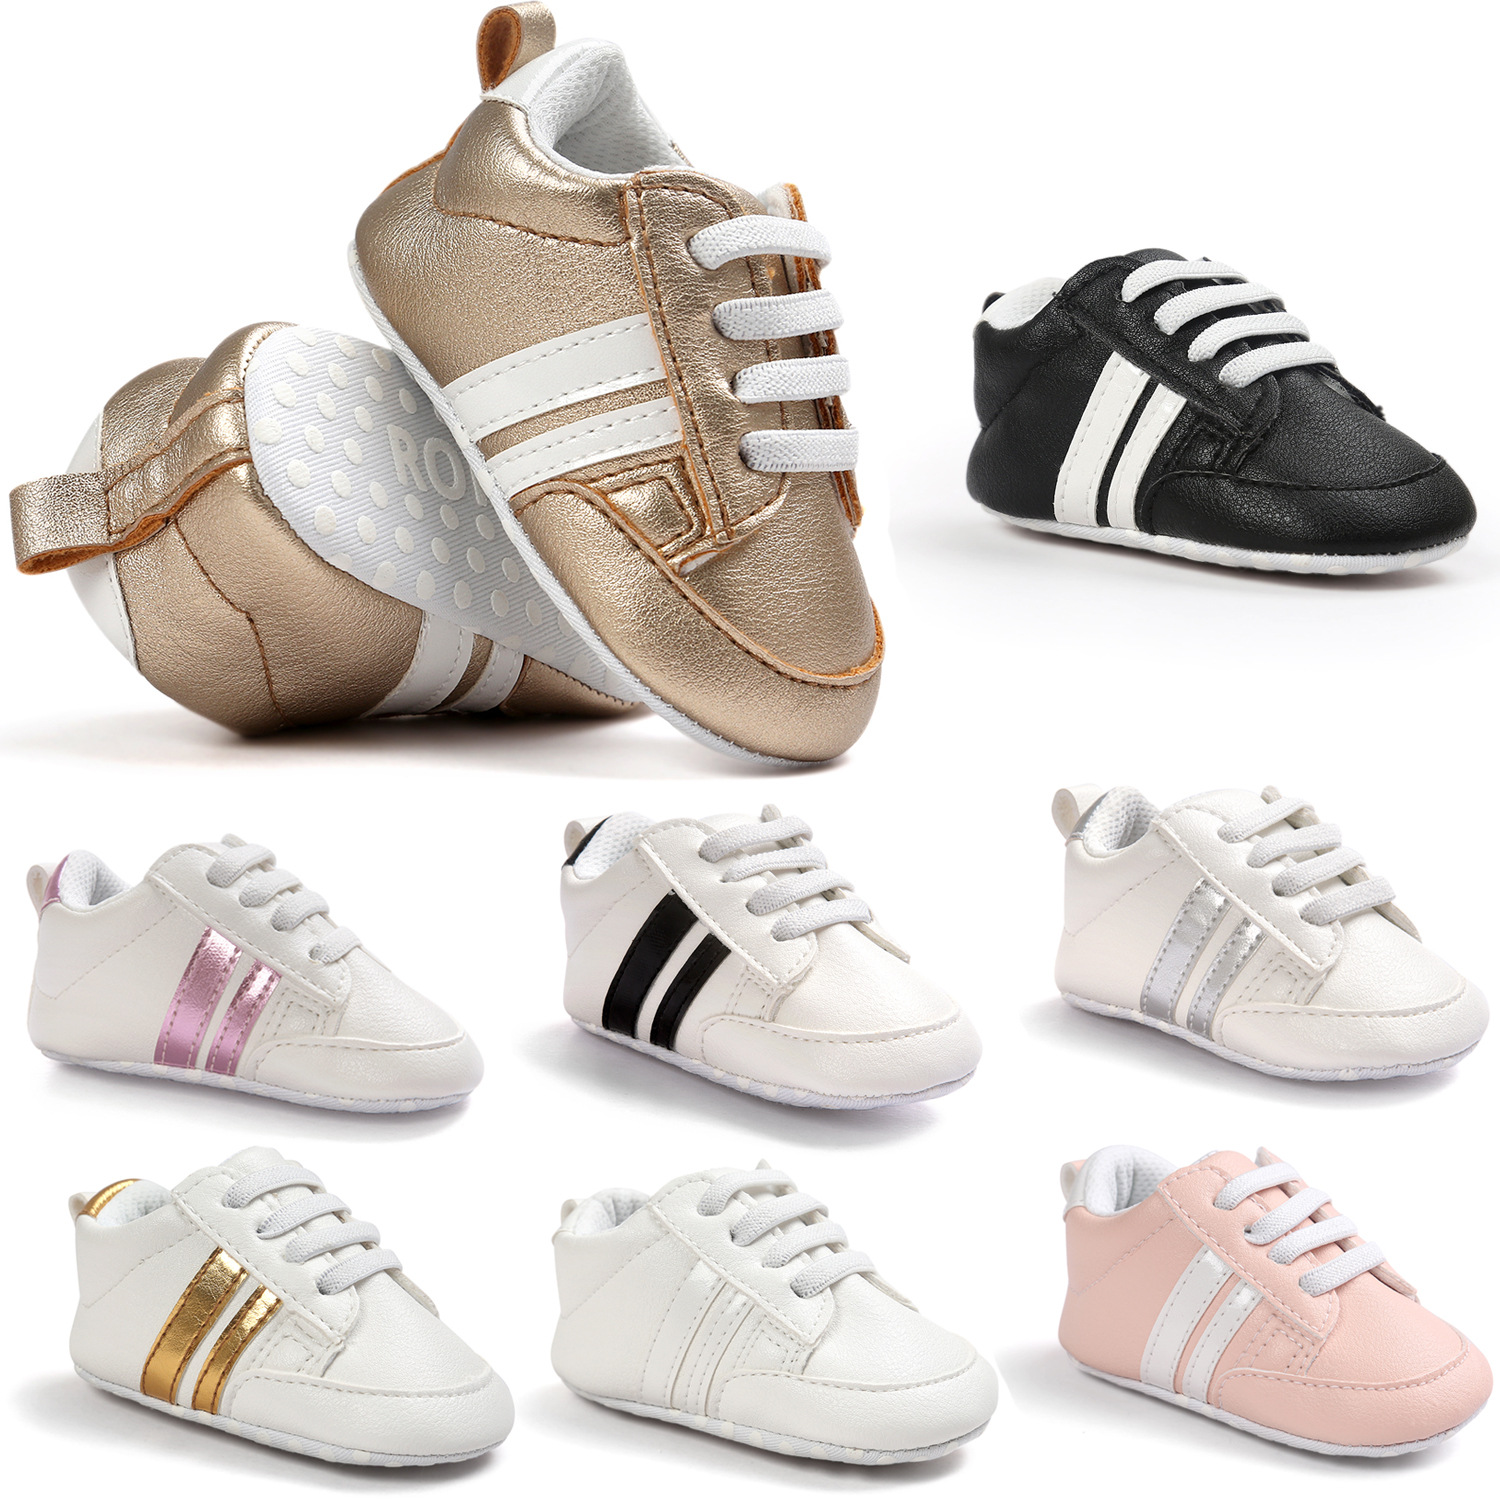 Leather baby shoes 8-Color PU Casual Boy Shoes Stripe Sports Toddler Shoes Children'S Shoes Soft Sole Sneakers First Walkers